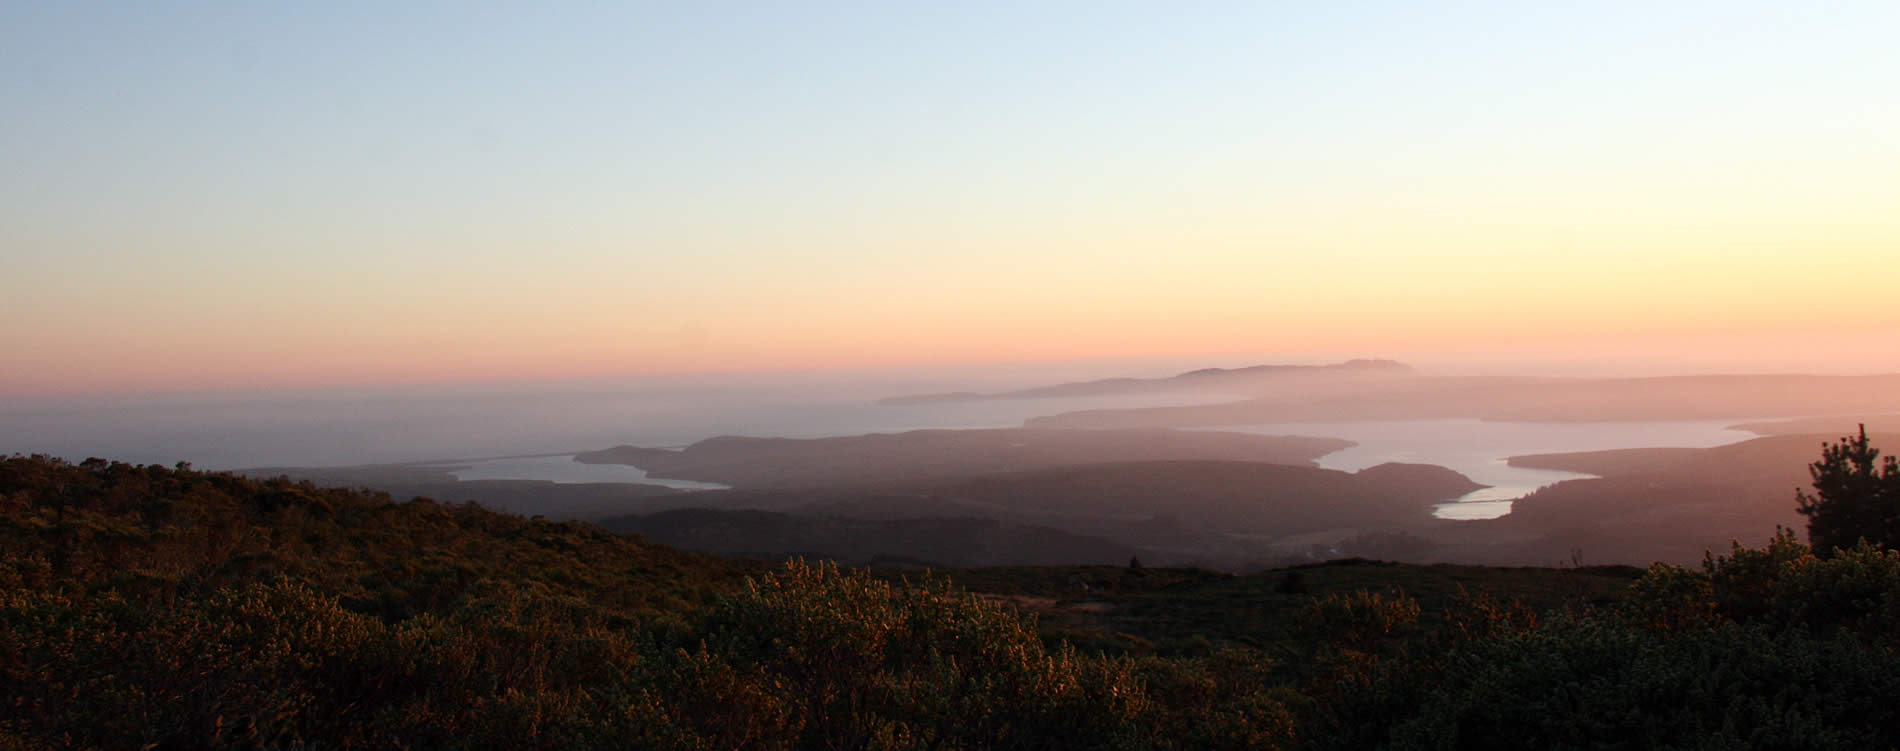 point reyes national seashore west marin california coast getaway - mount vision